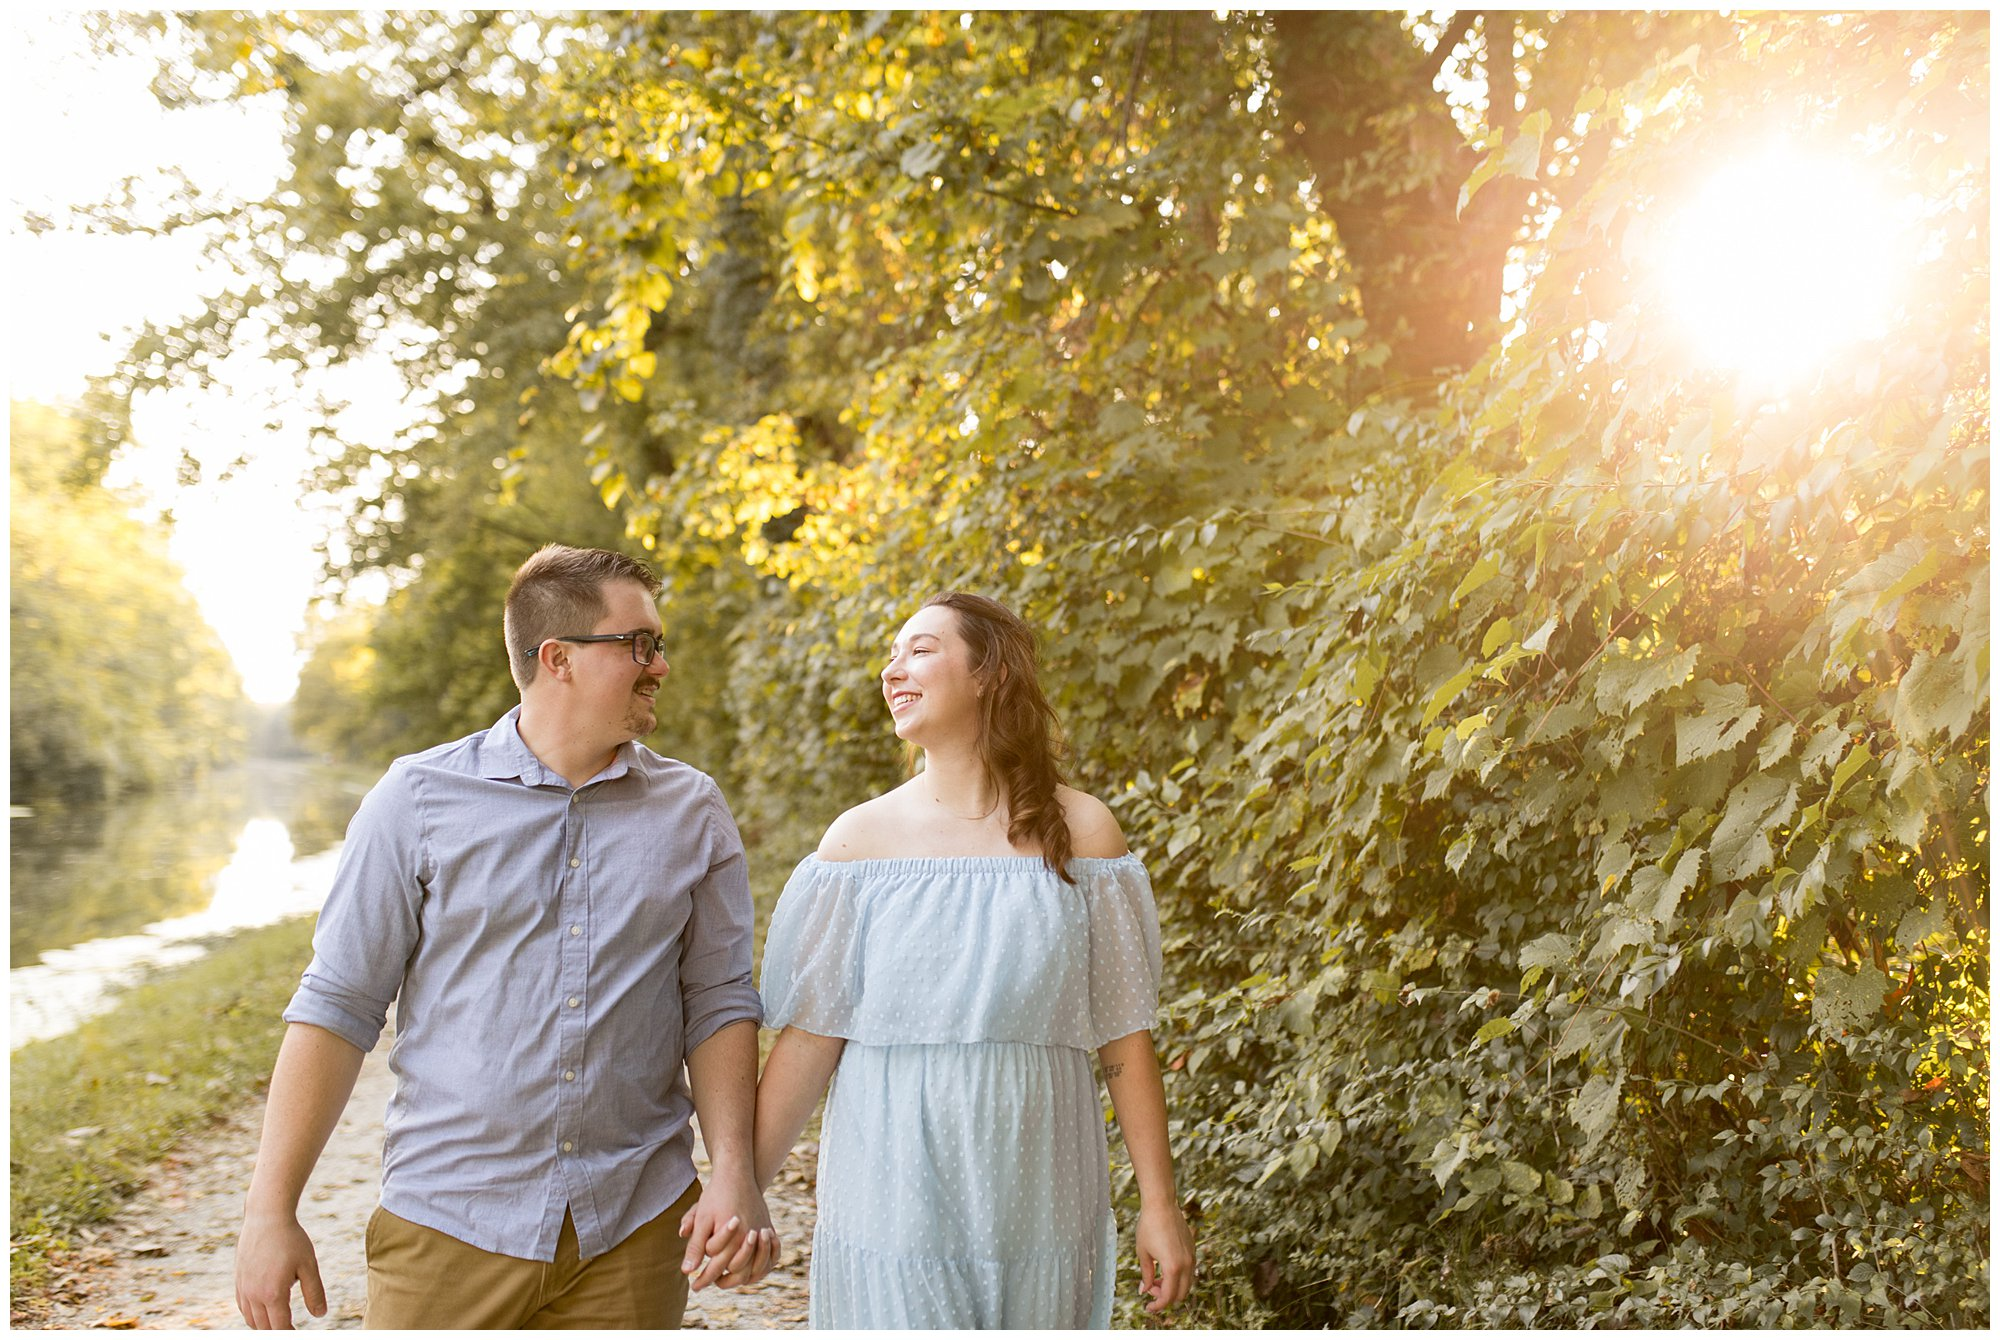 sunset engagement session at Holcomb Gardens